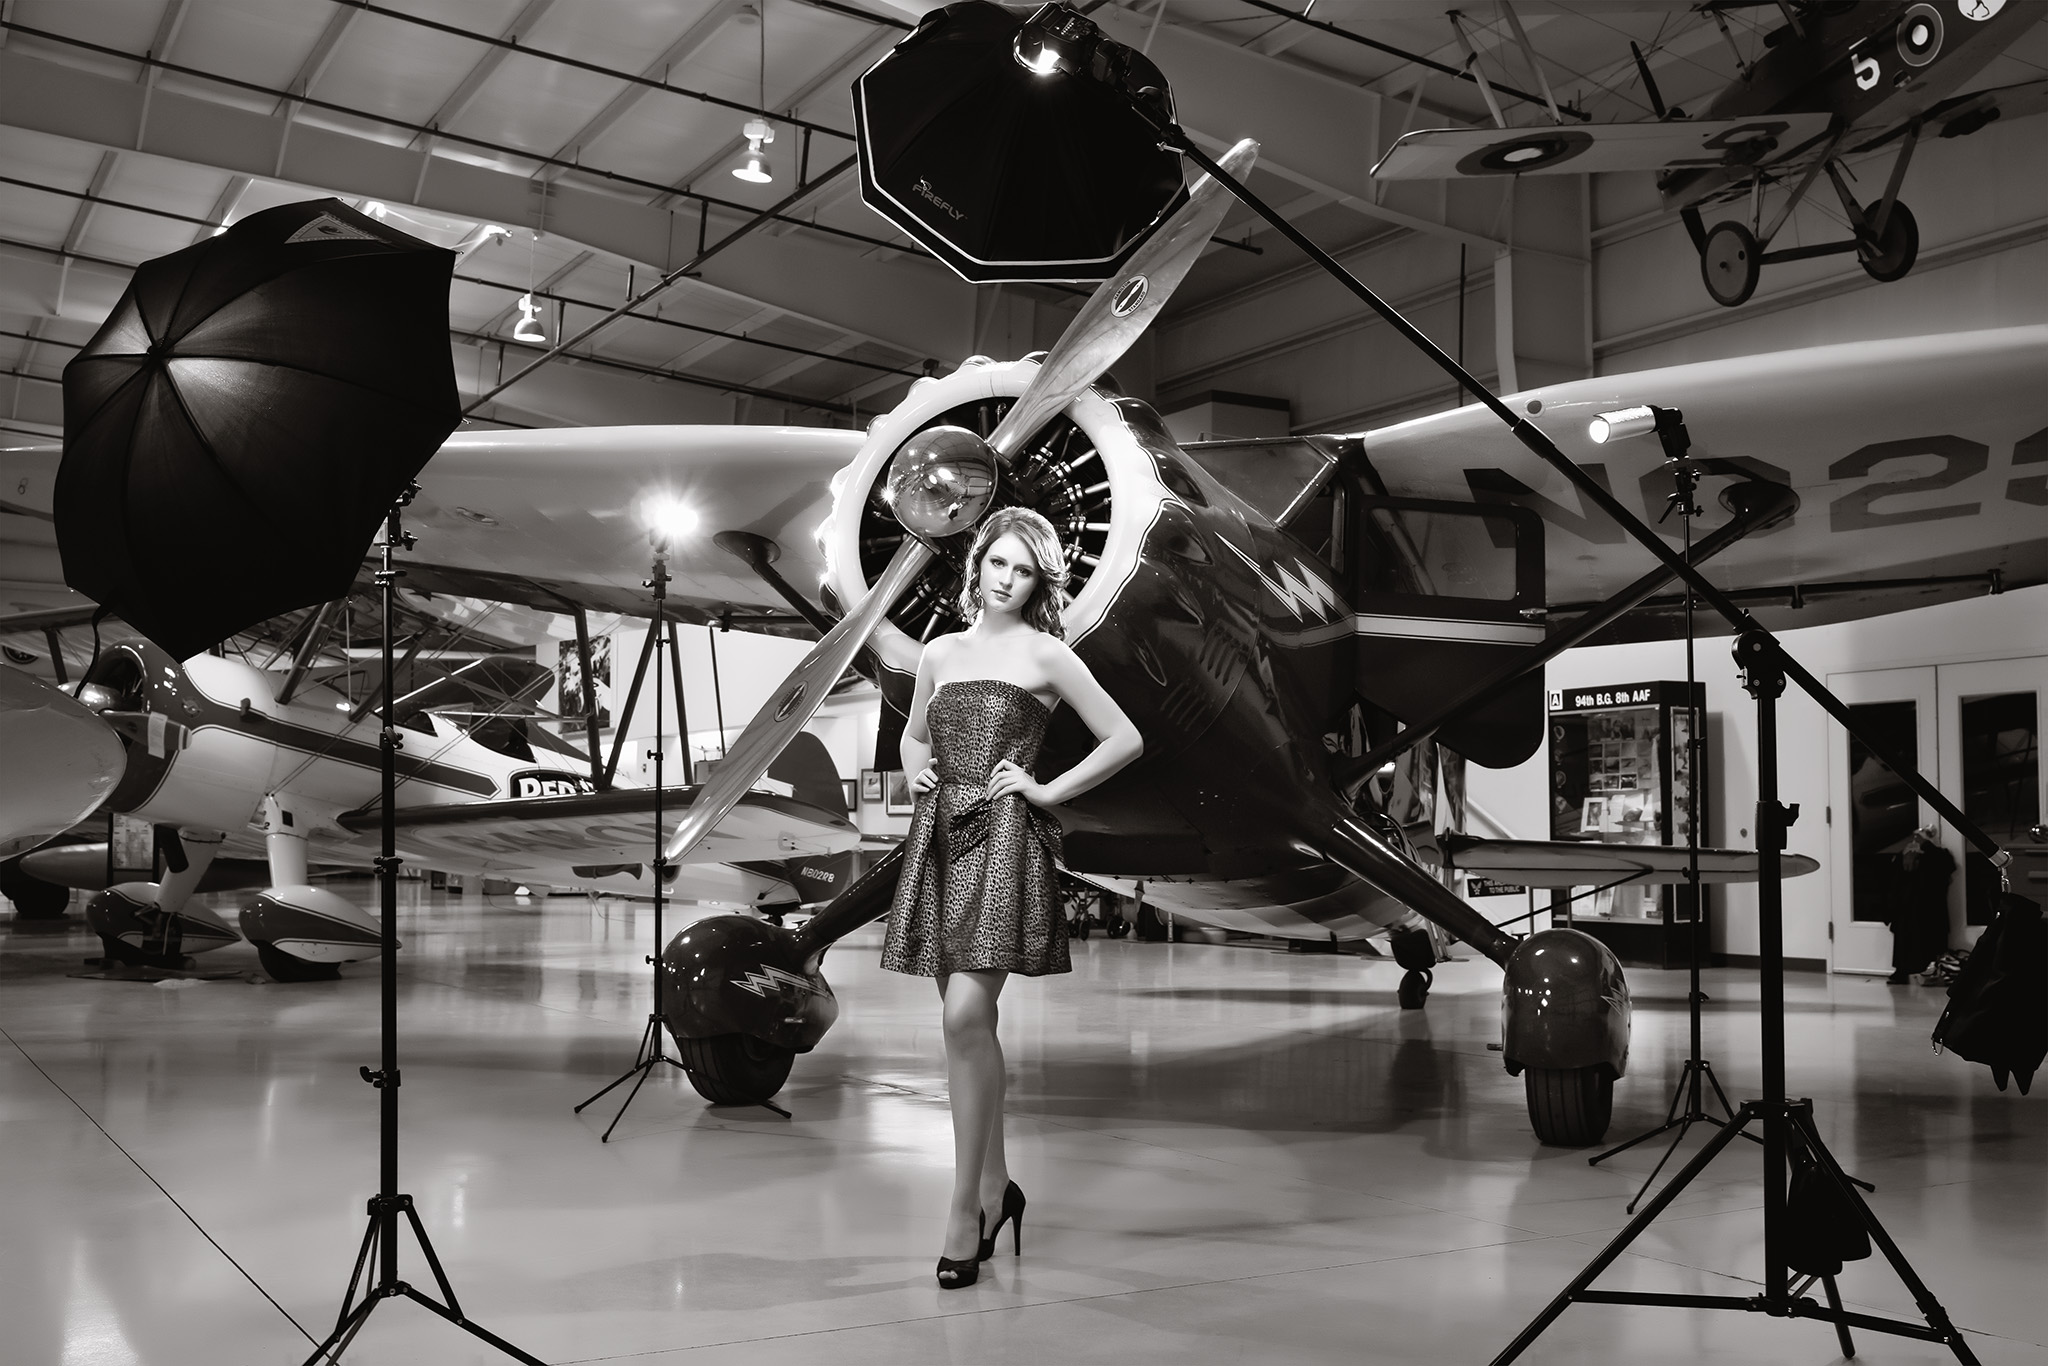 Elizabeth Riley models at the CAF Air Museum home of my 40's Hollywood Lighting Workshops